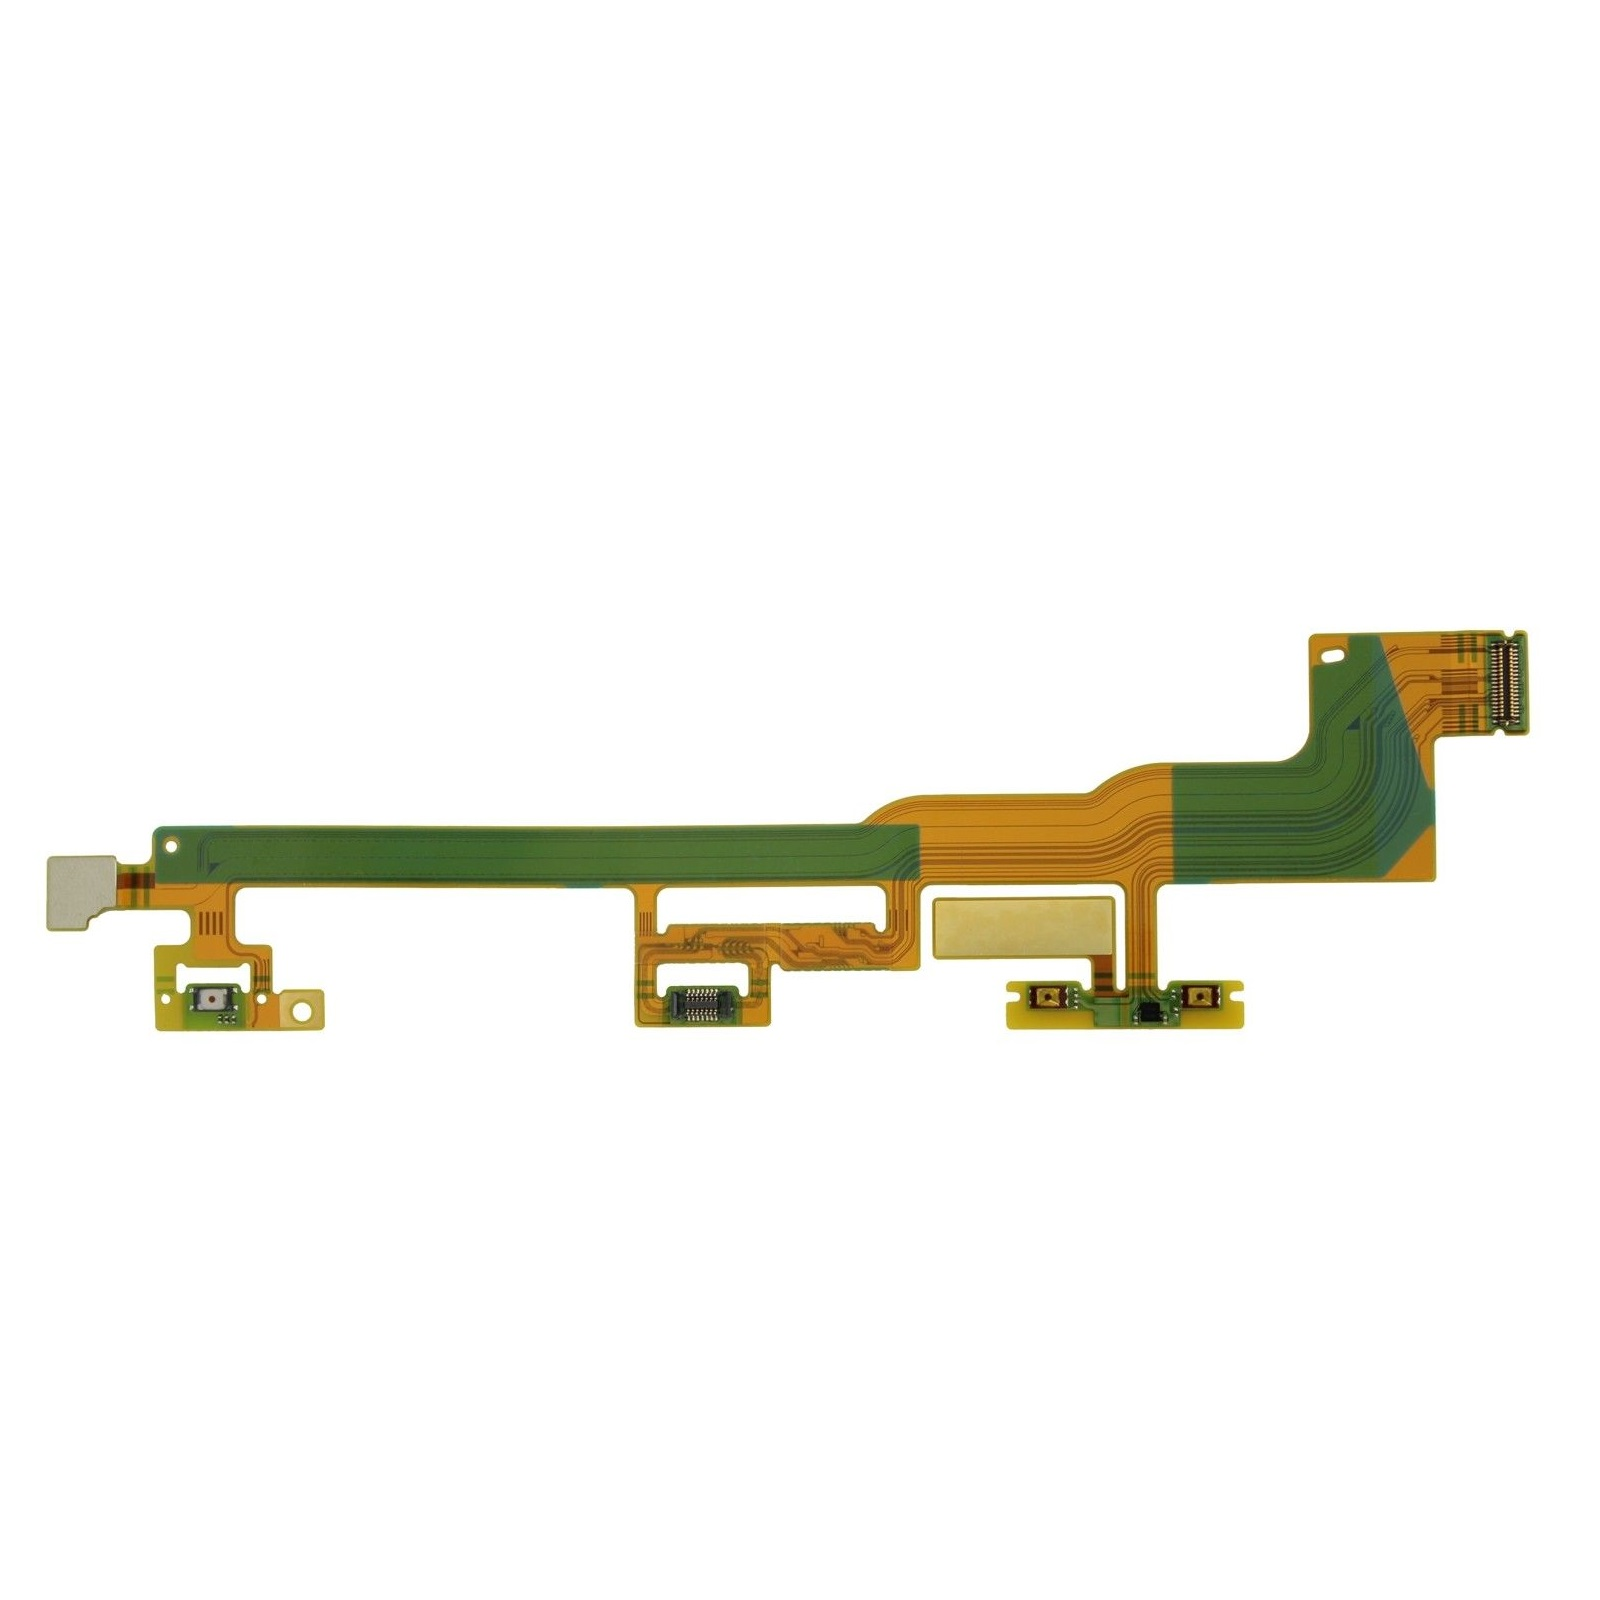 Power And Volume Key Button Flex Cable For Sony Xperia XZ Premium G8141 G8142 Repair Parts